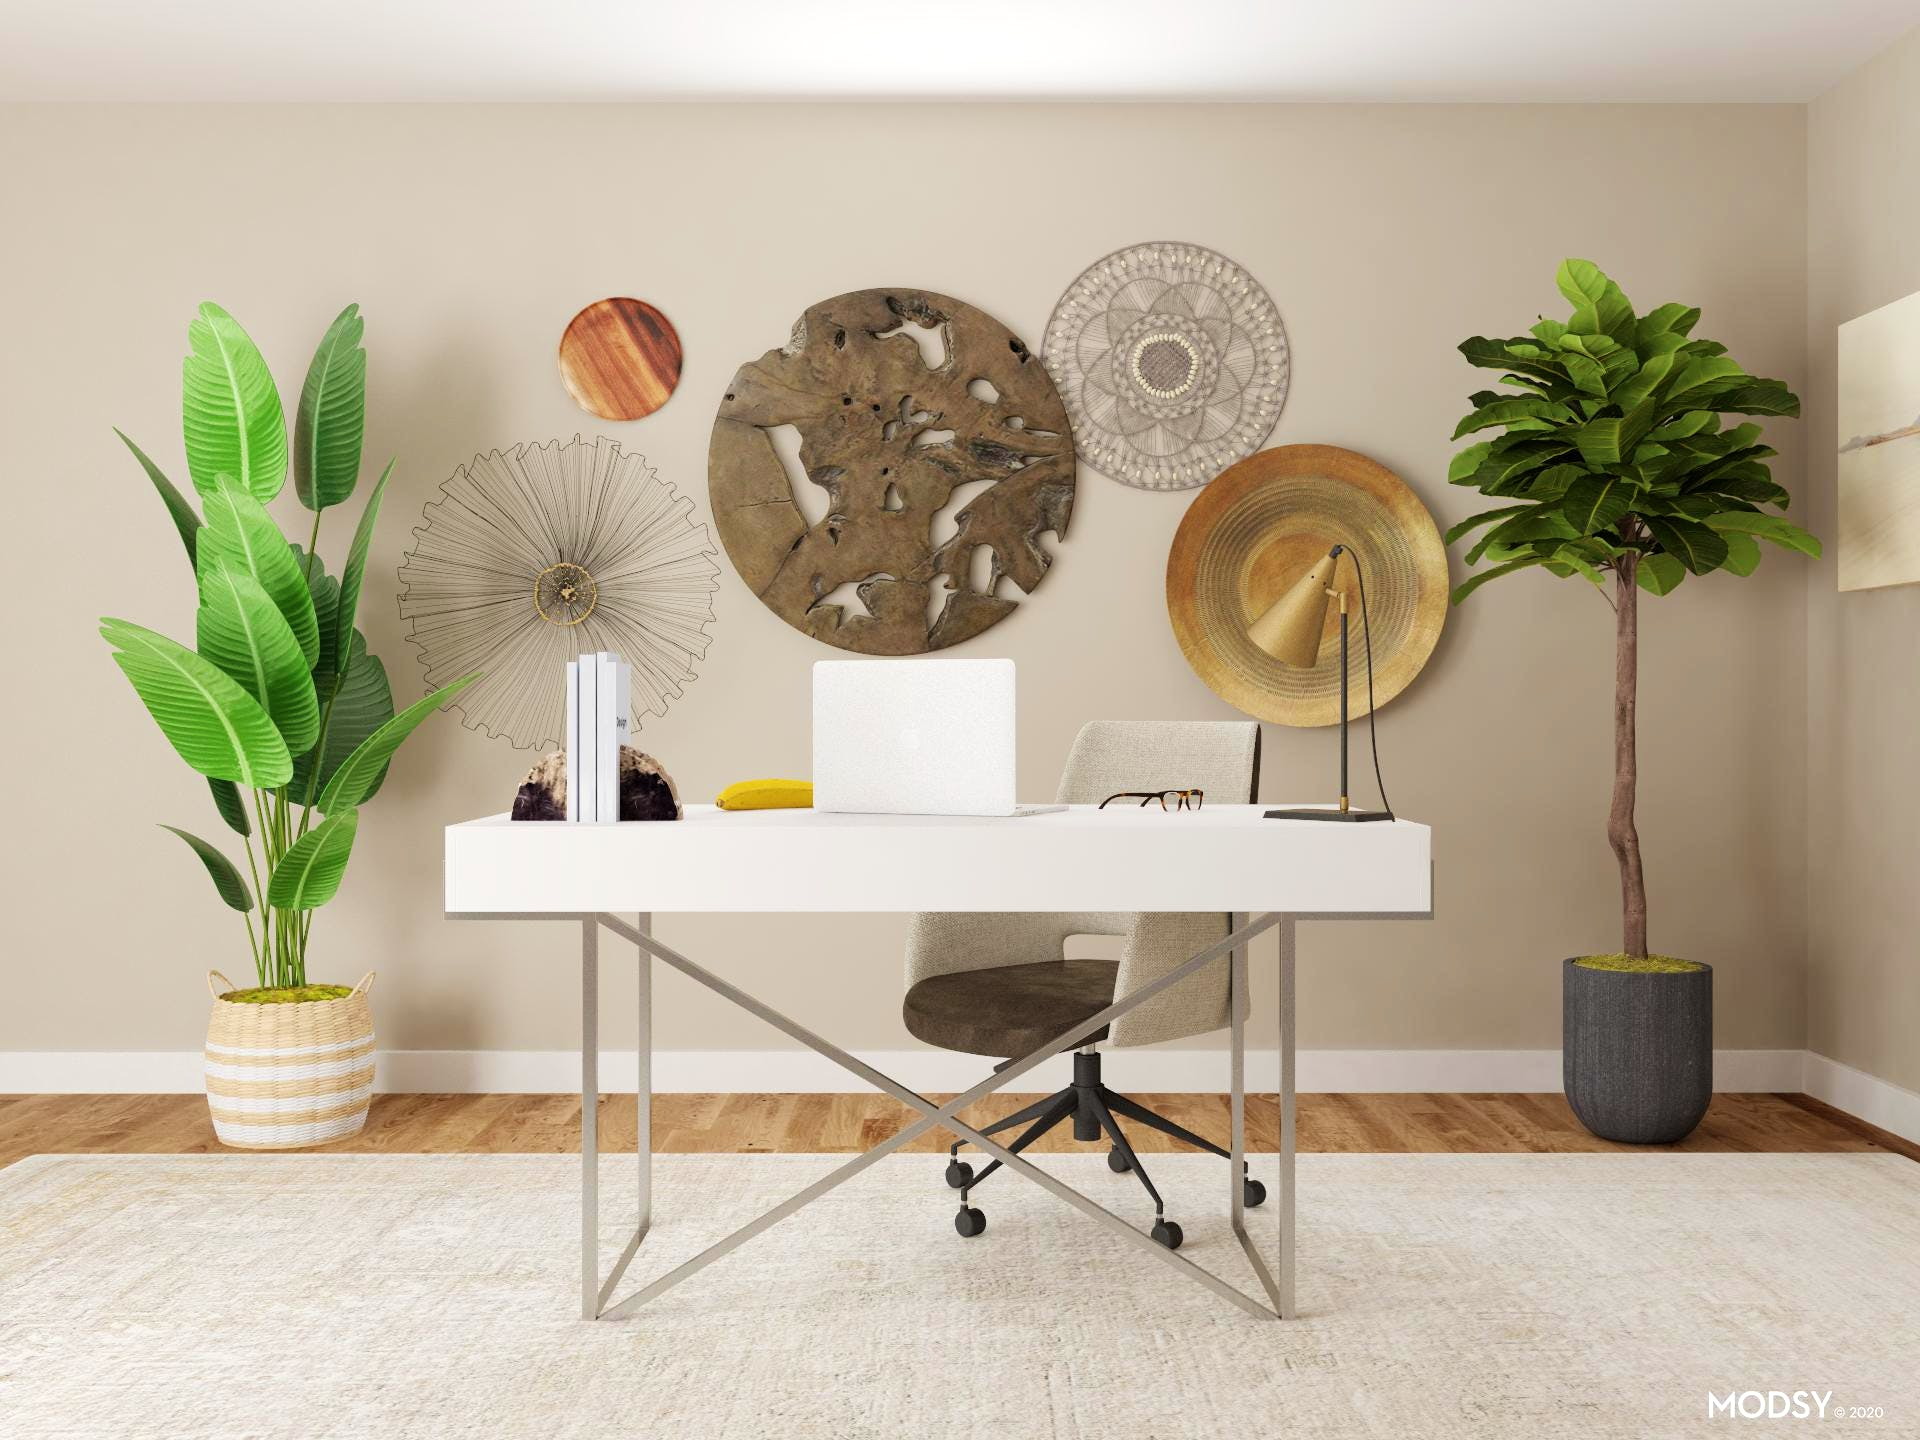 Transitional Office in Neutrals